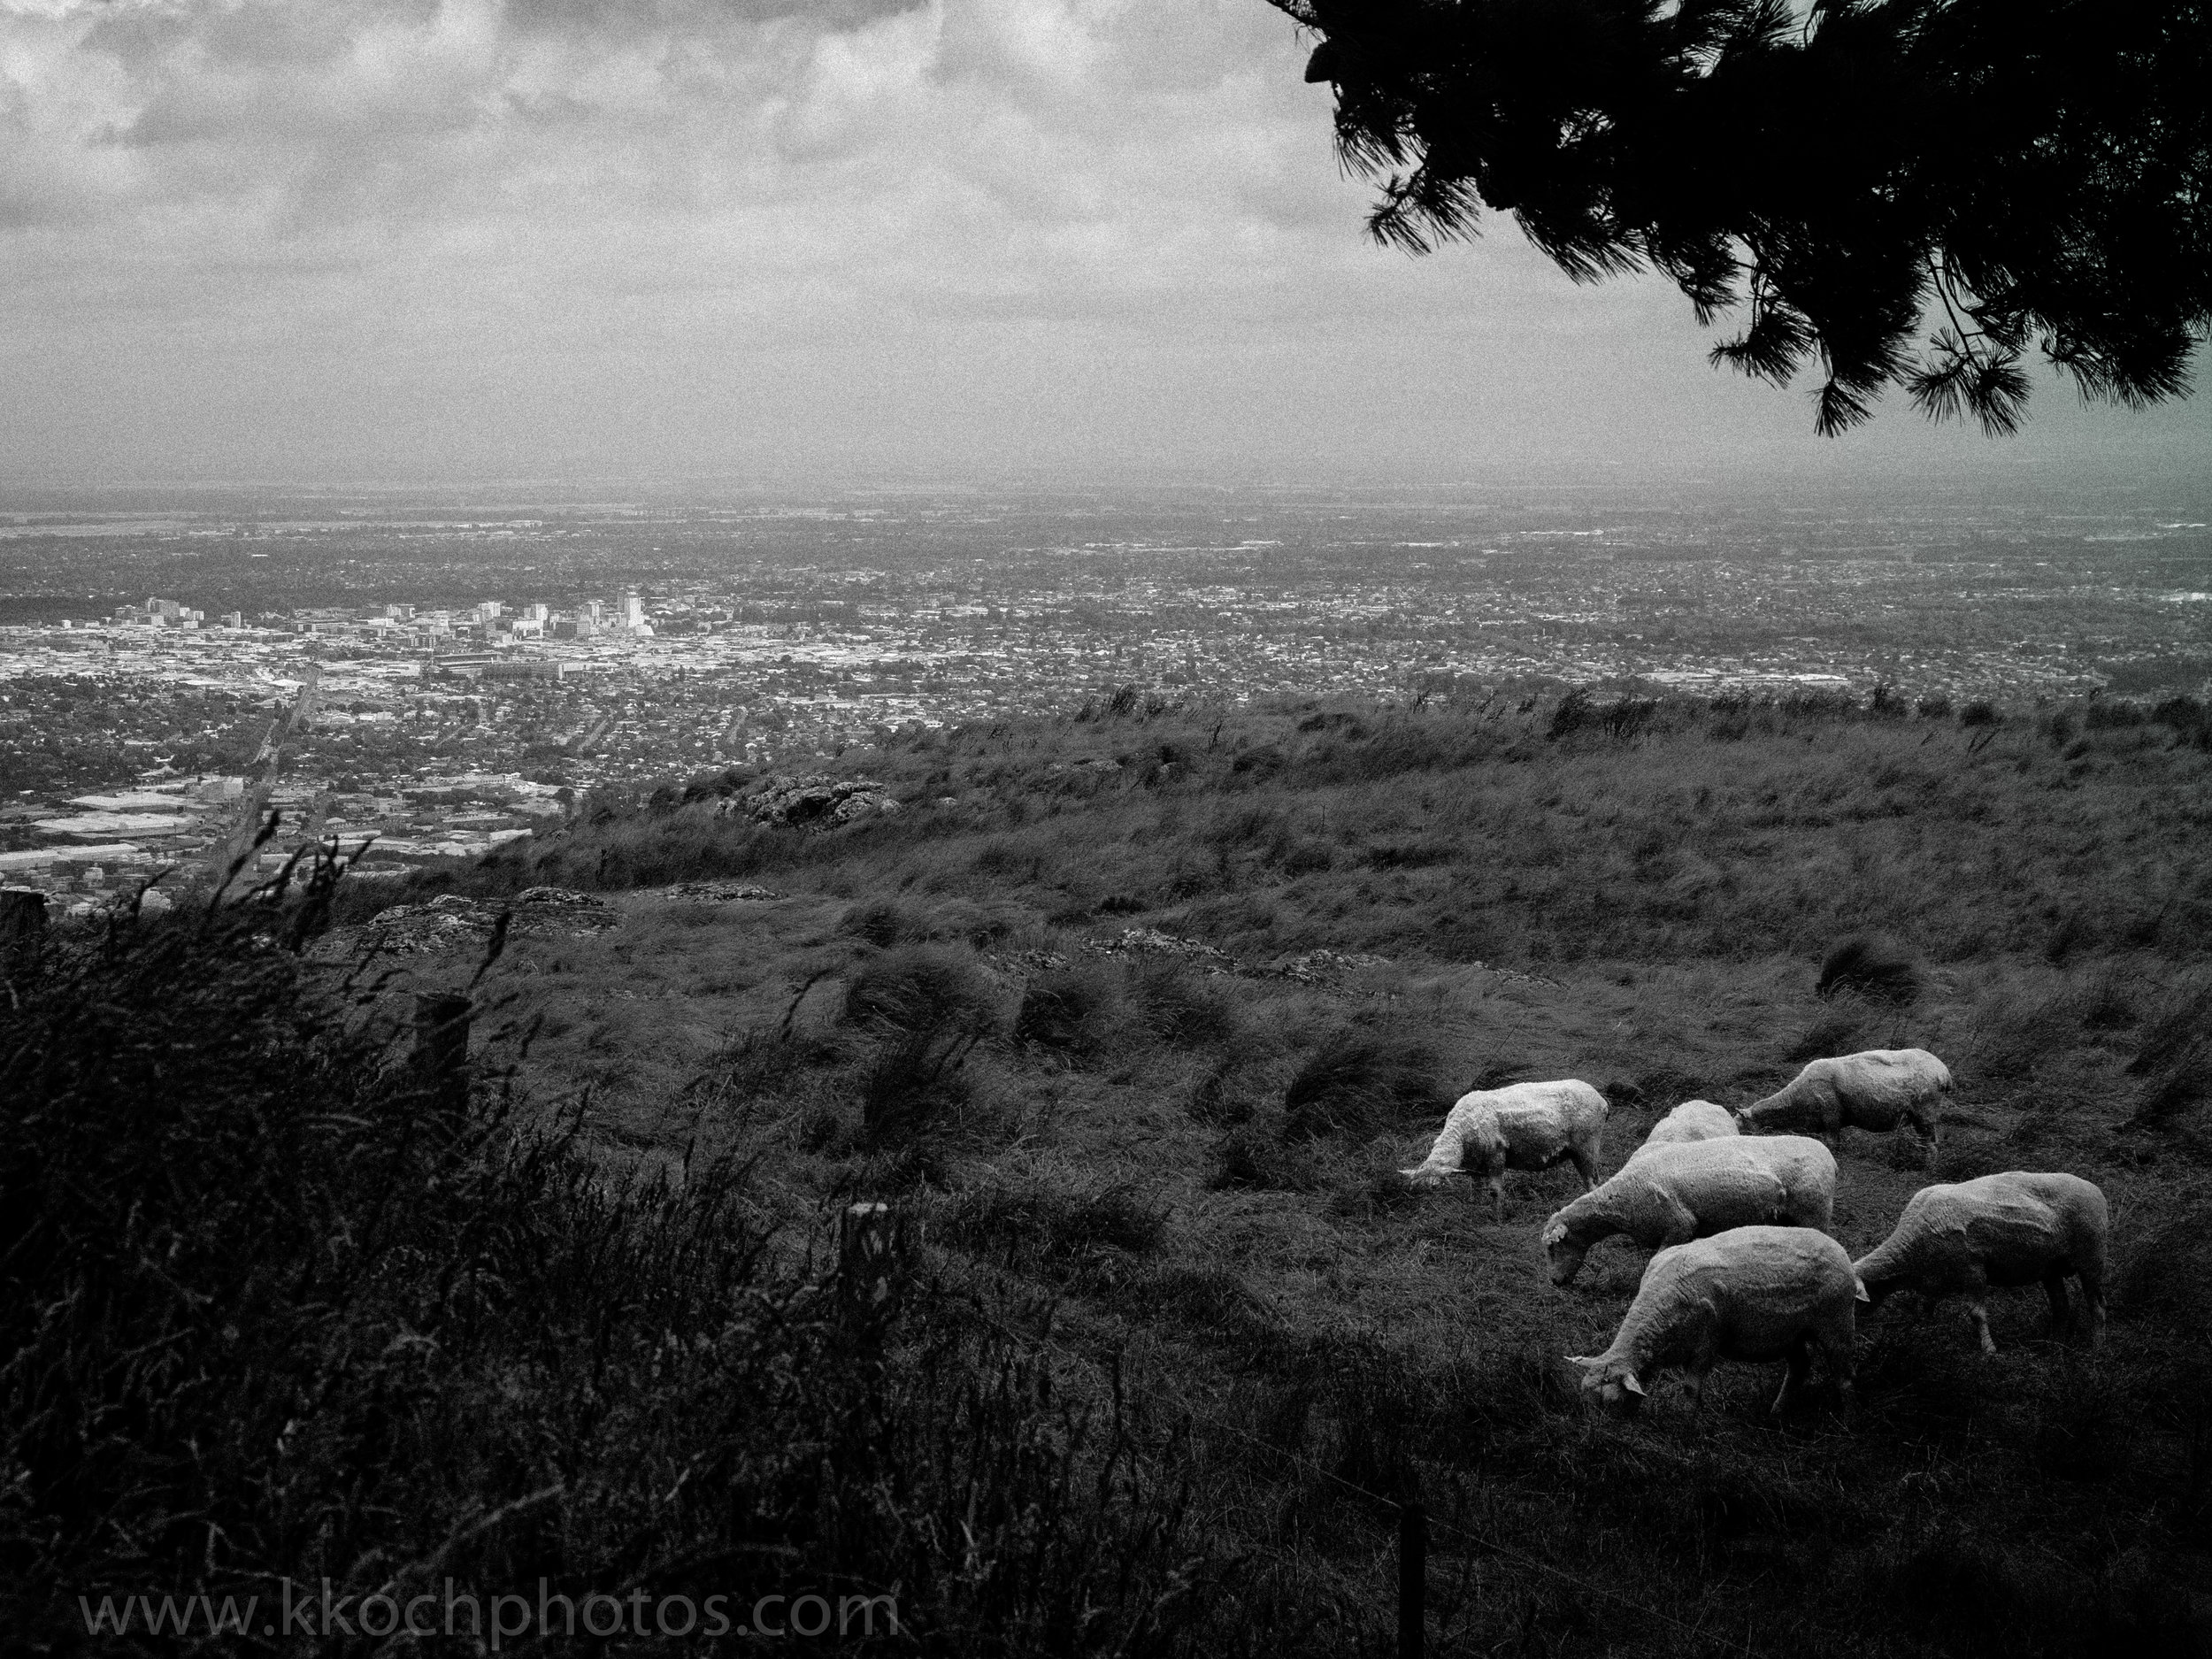 sheep grazing with christchurch in the background